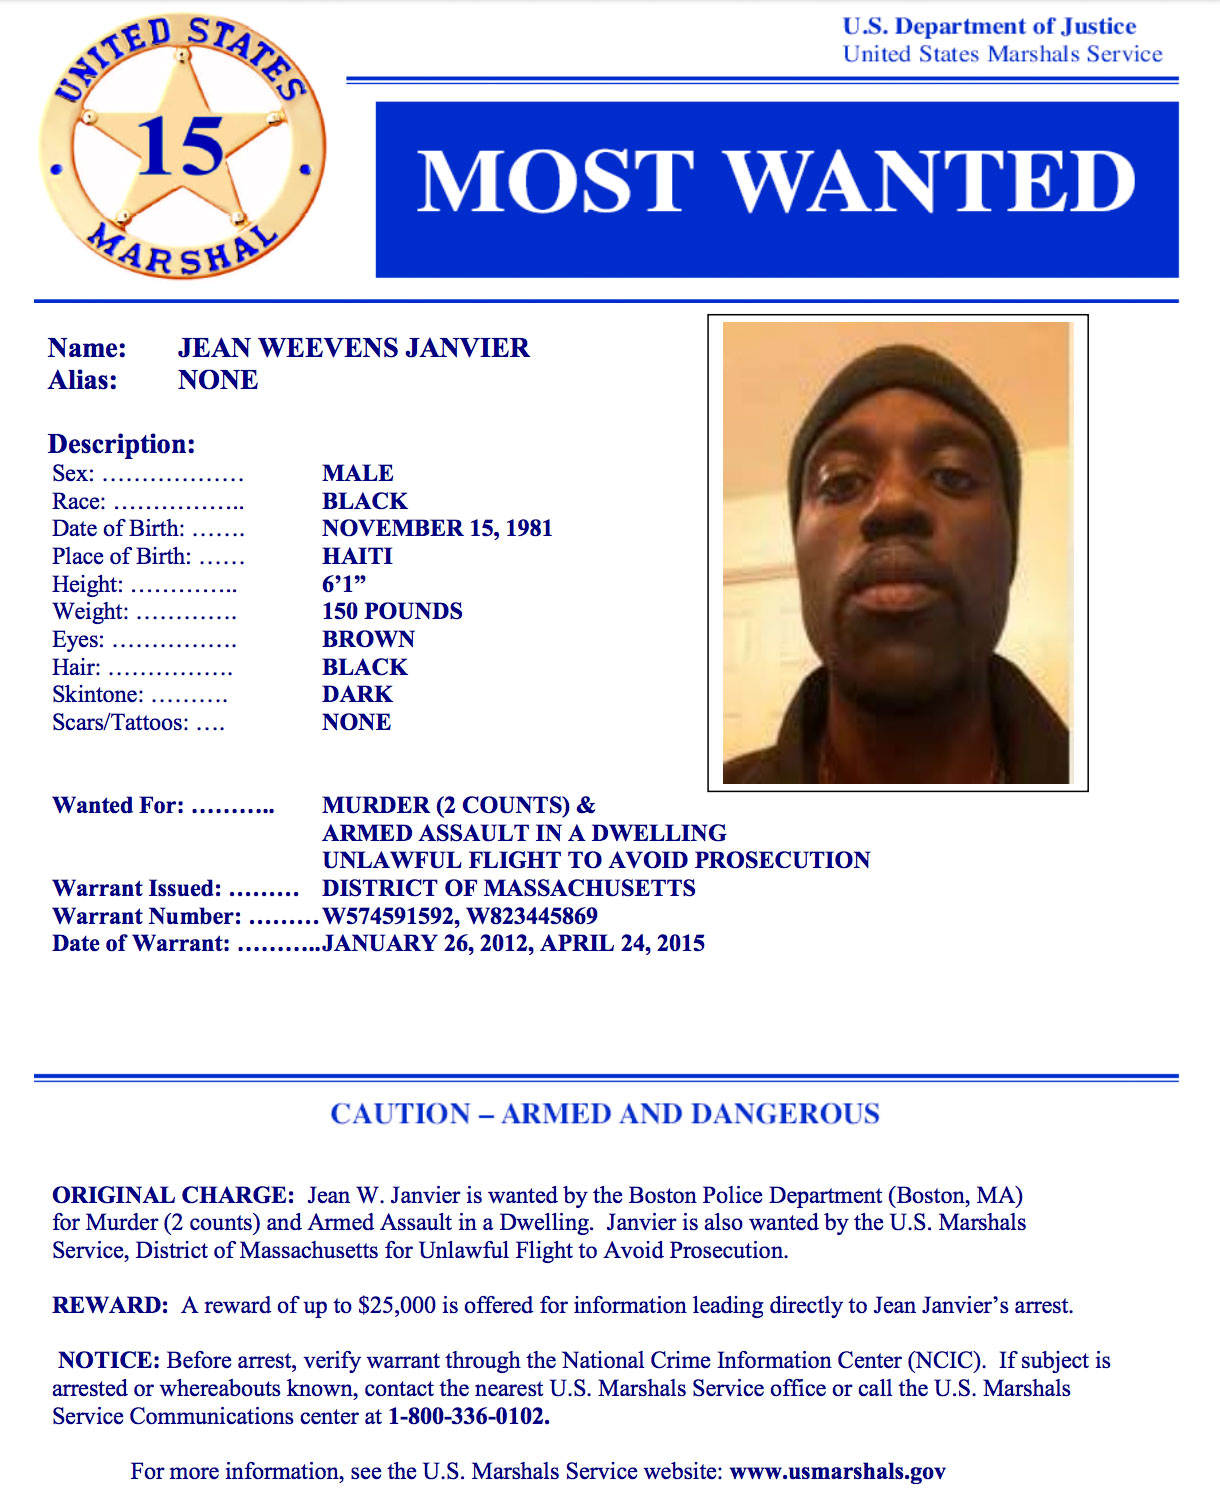 janvier-wanted-poster-usmarshals